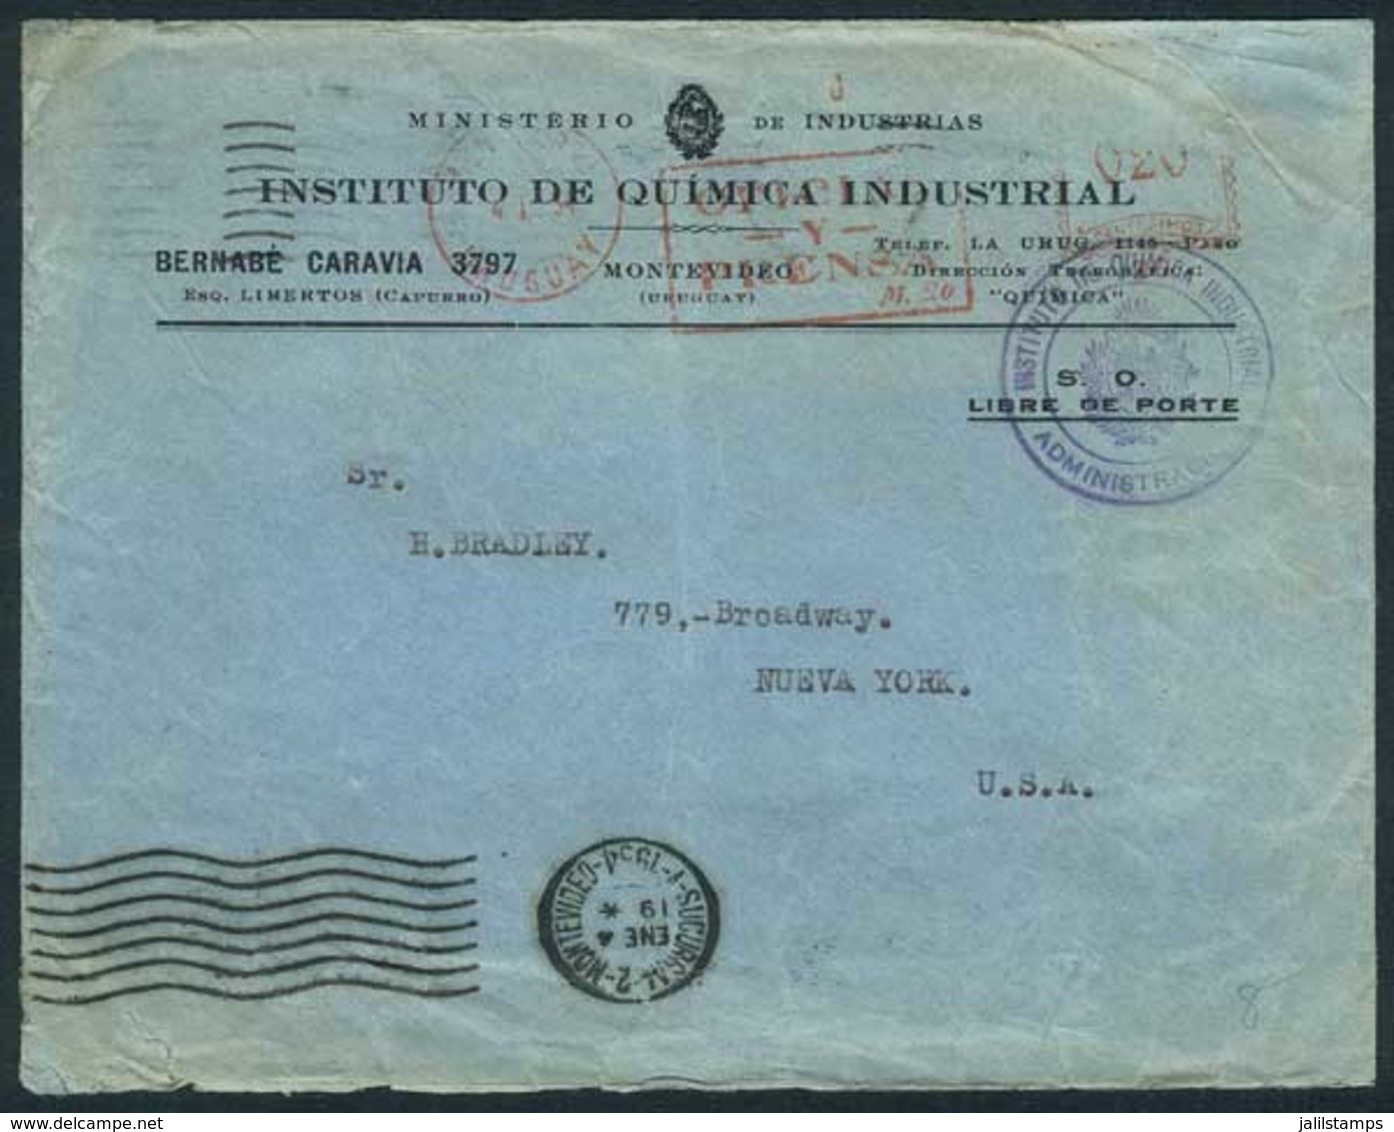 """URUGUAY: Cover Of The Industrial Chemistry Institute Sent To USA On 4/JA/1934, Meter Postage Of 20c. With Inscription """"O - Uruguay"""